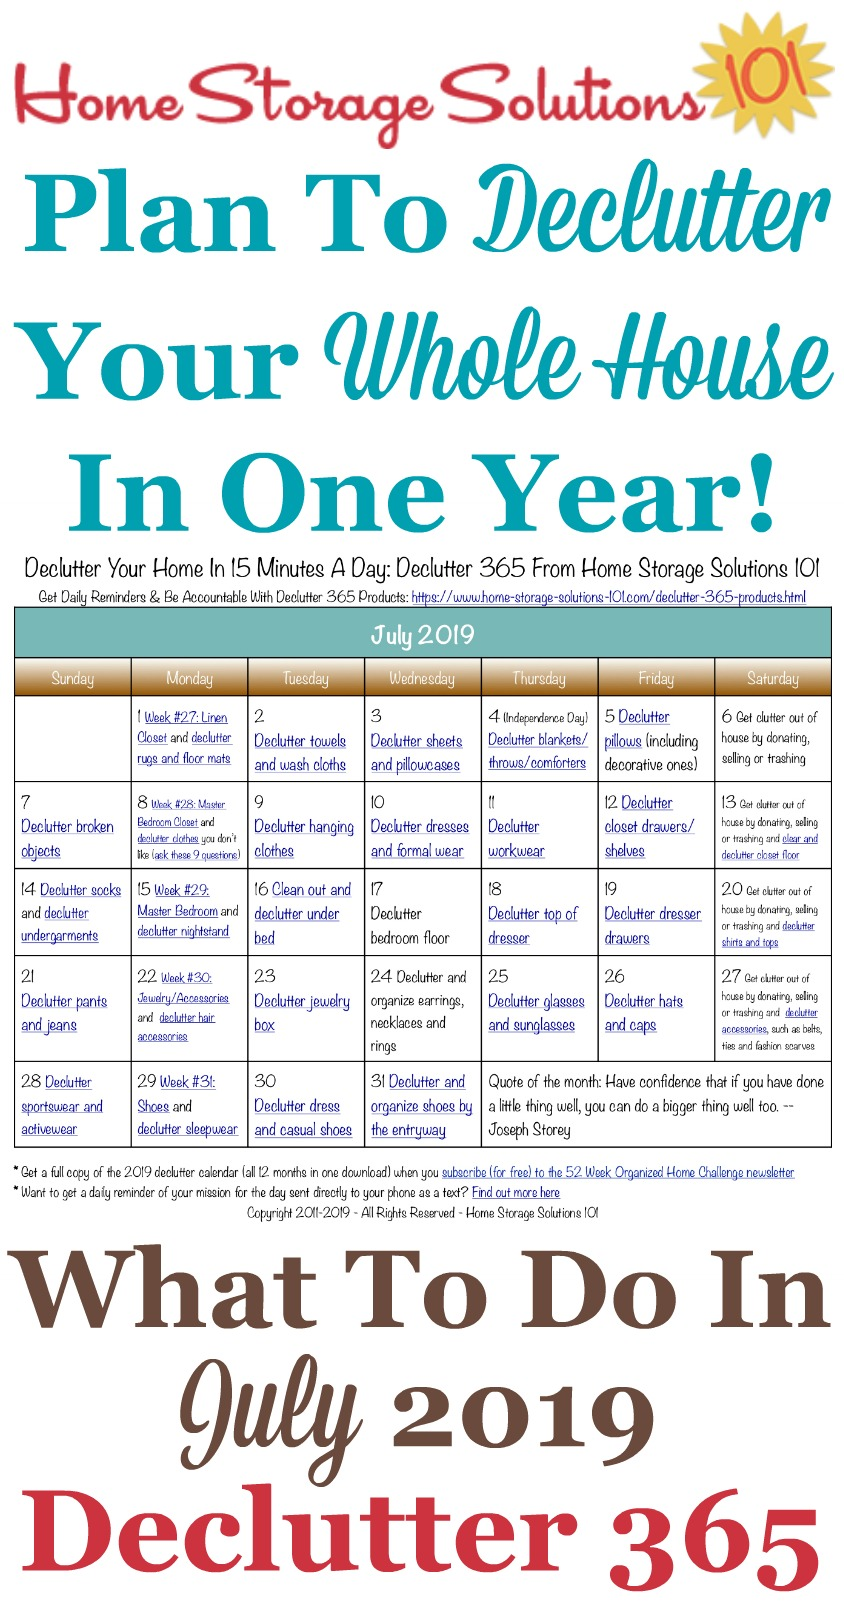 Free printable July 2019 #decluttering calendar with daily 15 minute missions. Follow the entire #Declutter365 plan provided by Home Storage Solutions 101 to #declutter your whole house in a year.